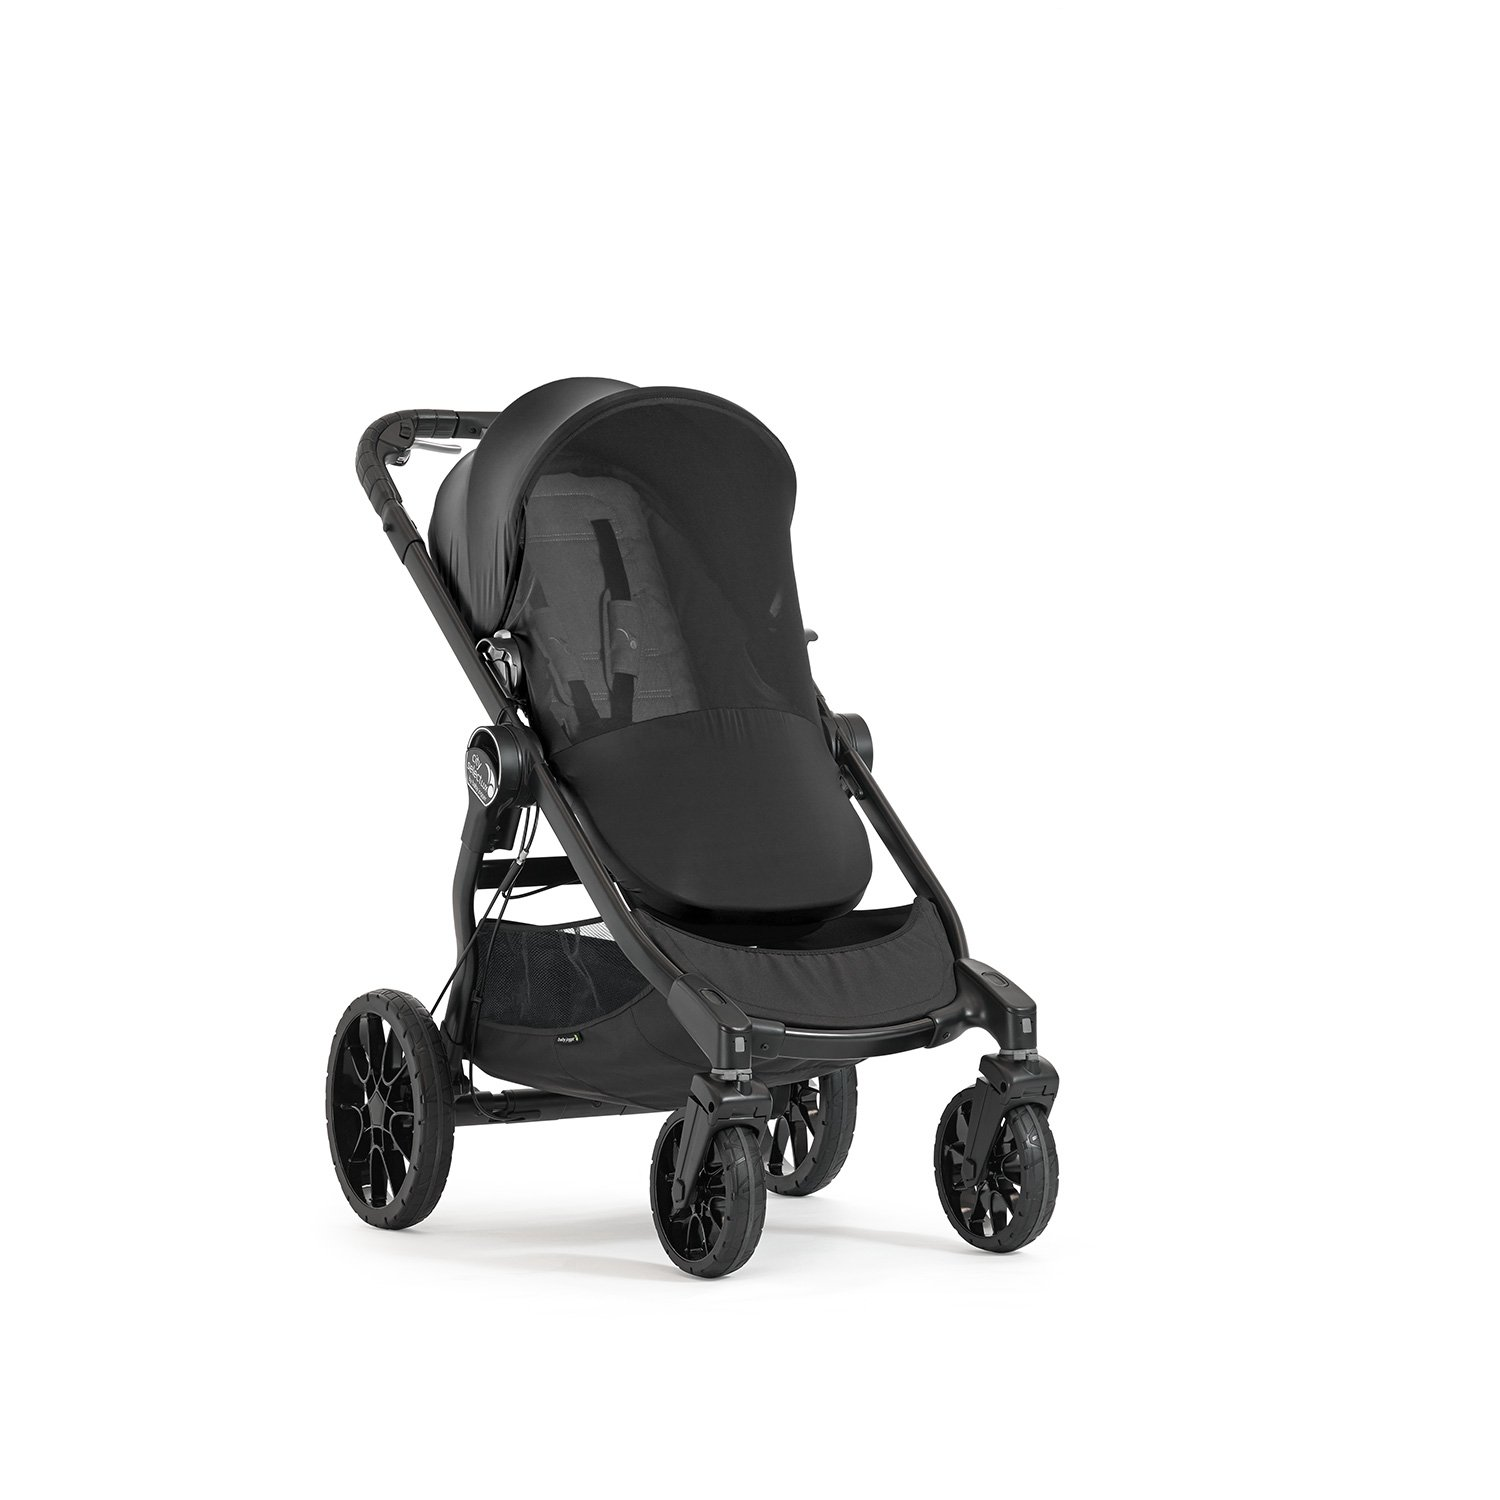 Baby Jogger City Select/LUX Bug Canopy, Black 2014205